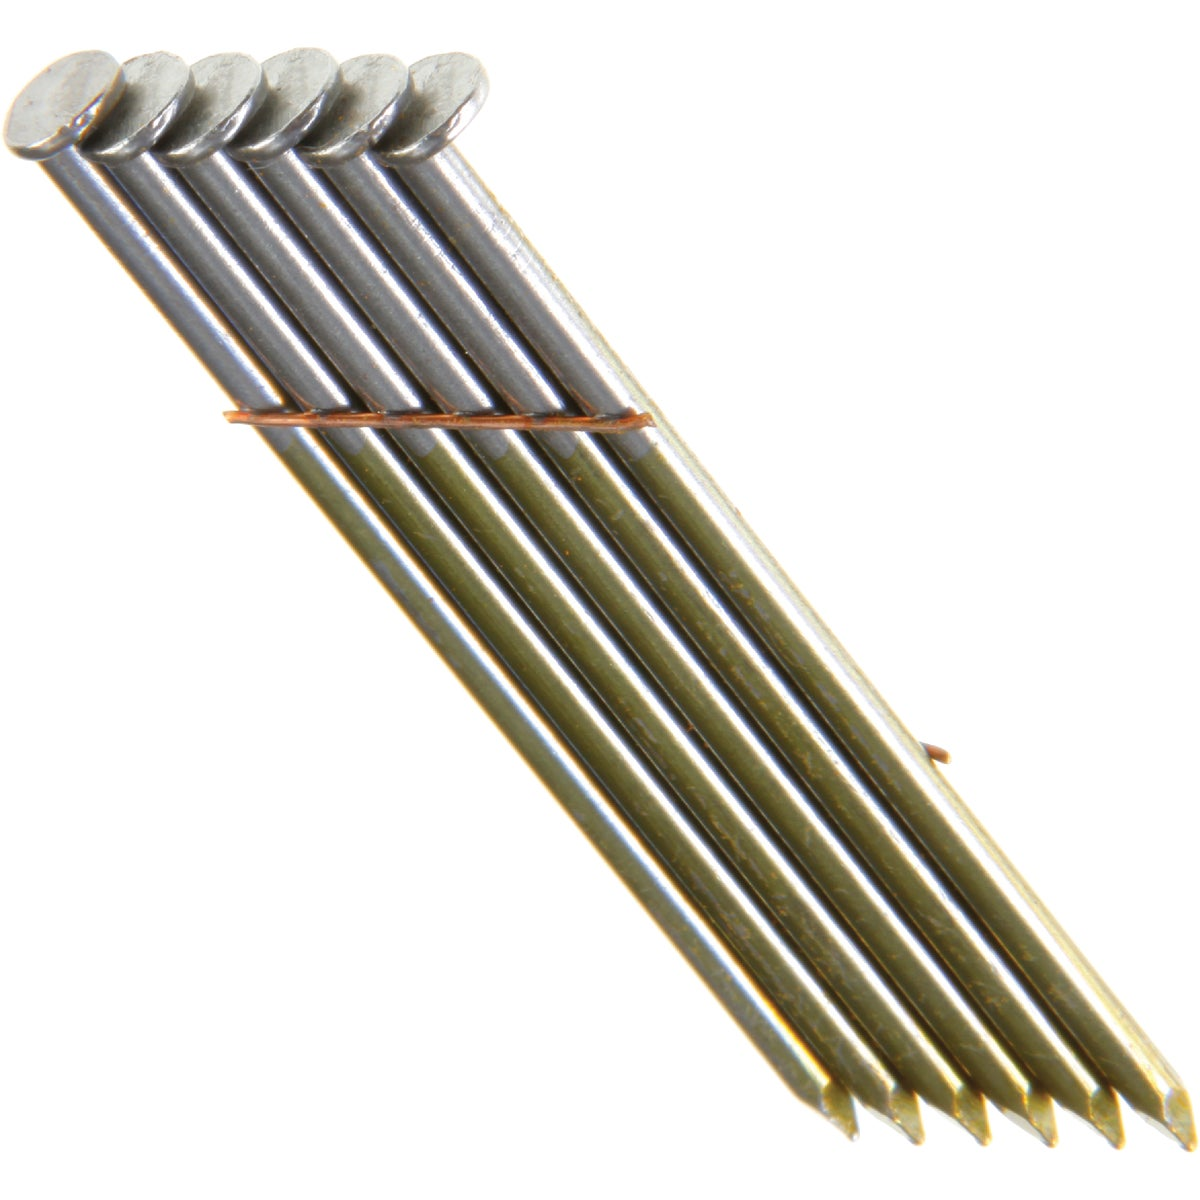 "3-1/4""X.120 FRAMING NAIL - GRW12H1 by Prime Source Pneumat"